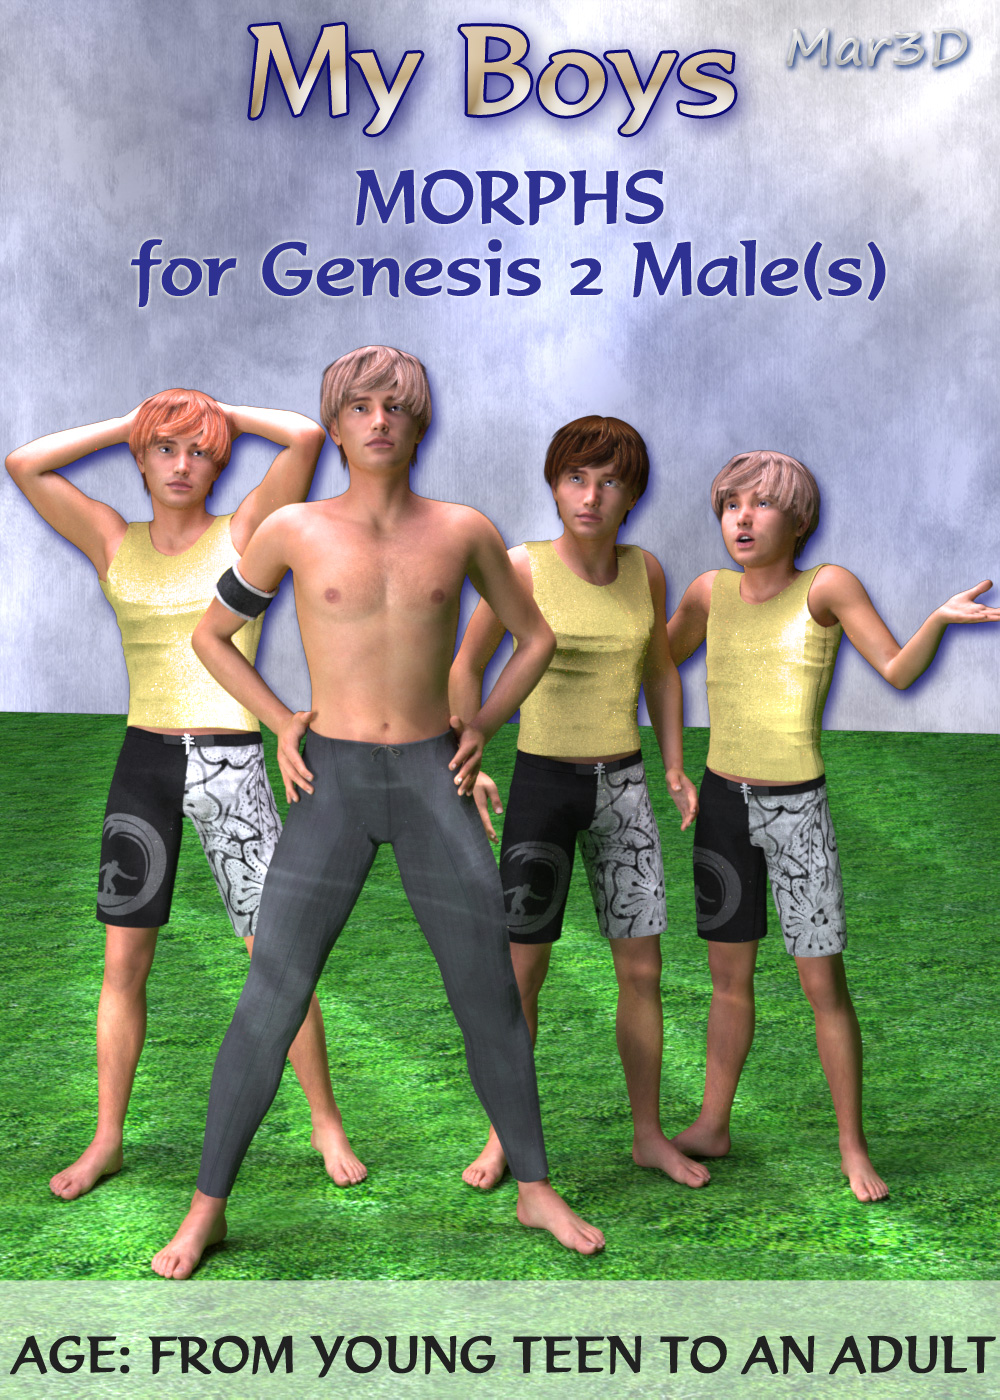 MY BOYS  Custom Body Morphs for Genesis 2 Male(s)